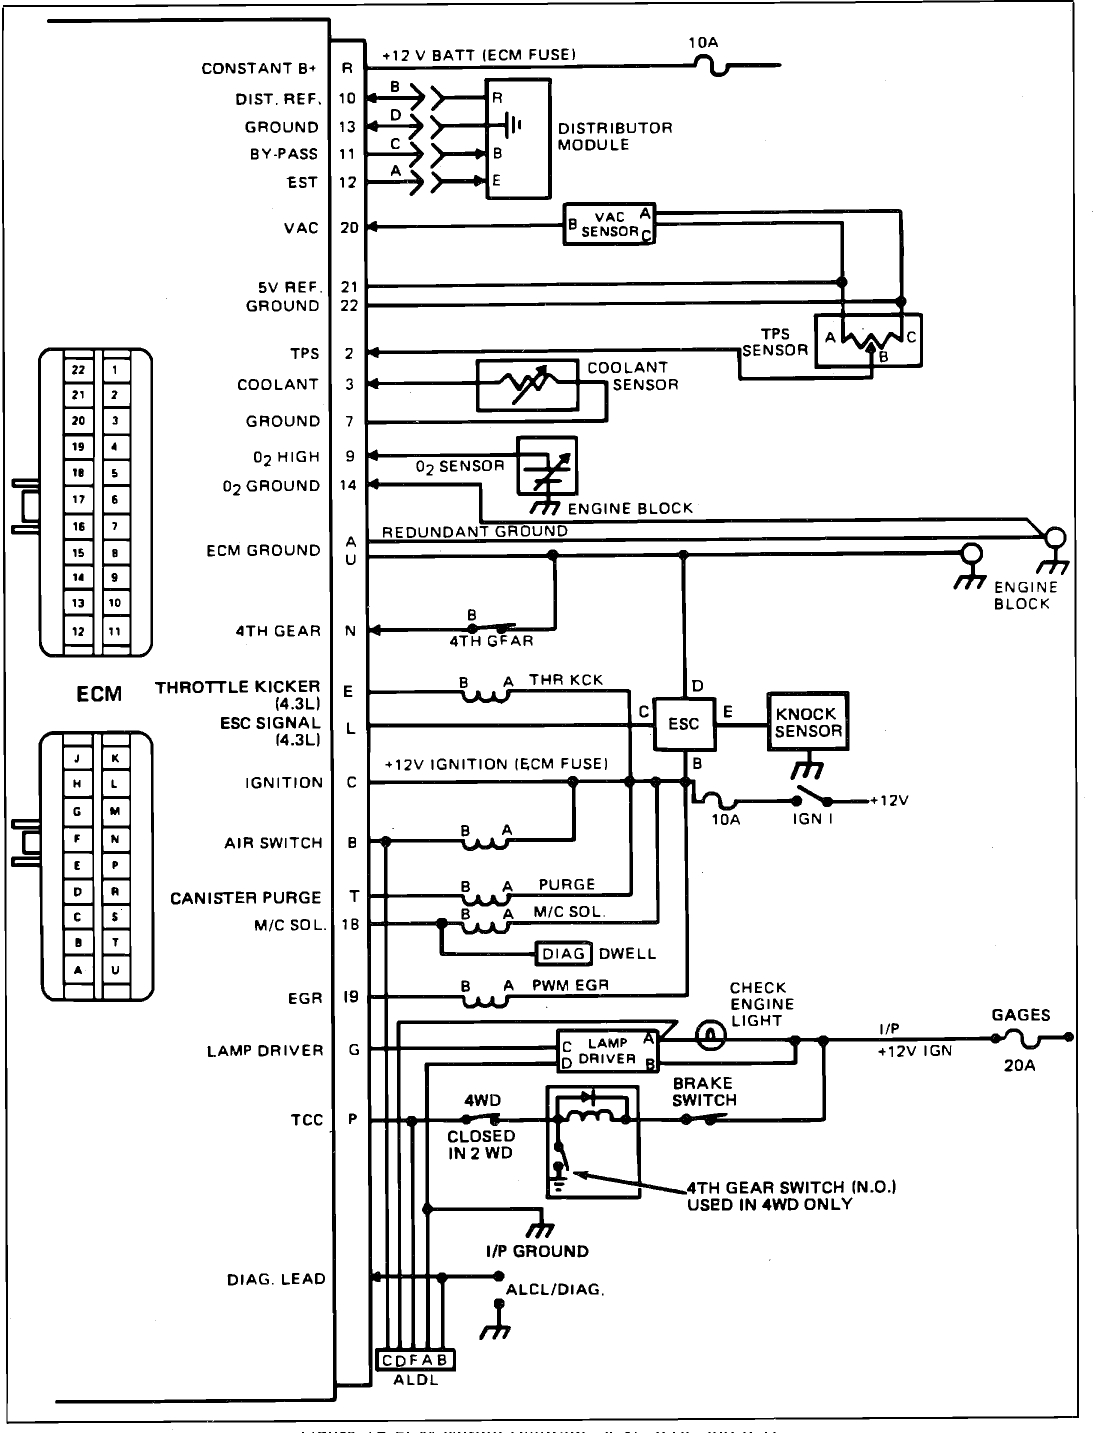 1955 Chevy Wiring Diagram On Overdrive Trusted Bel Air 1995 News U2022 1959 Chevrolet